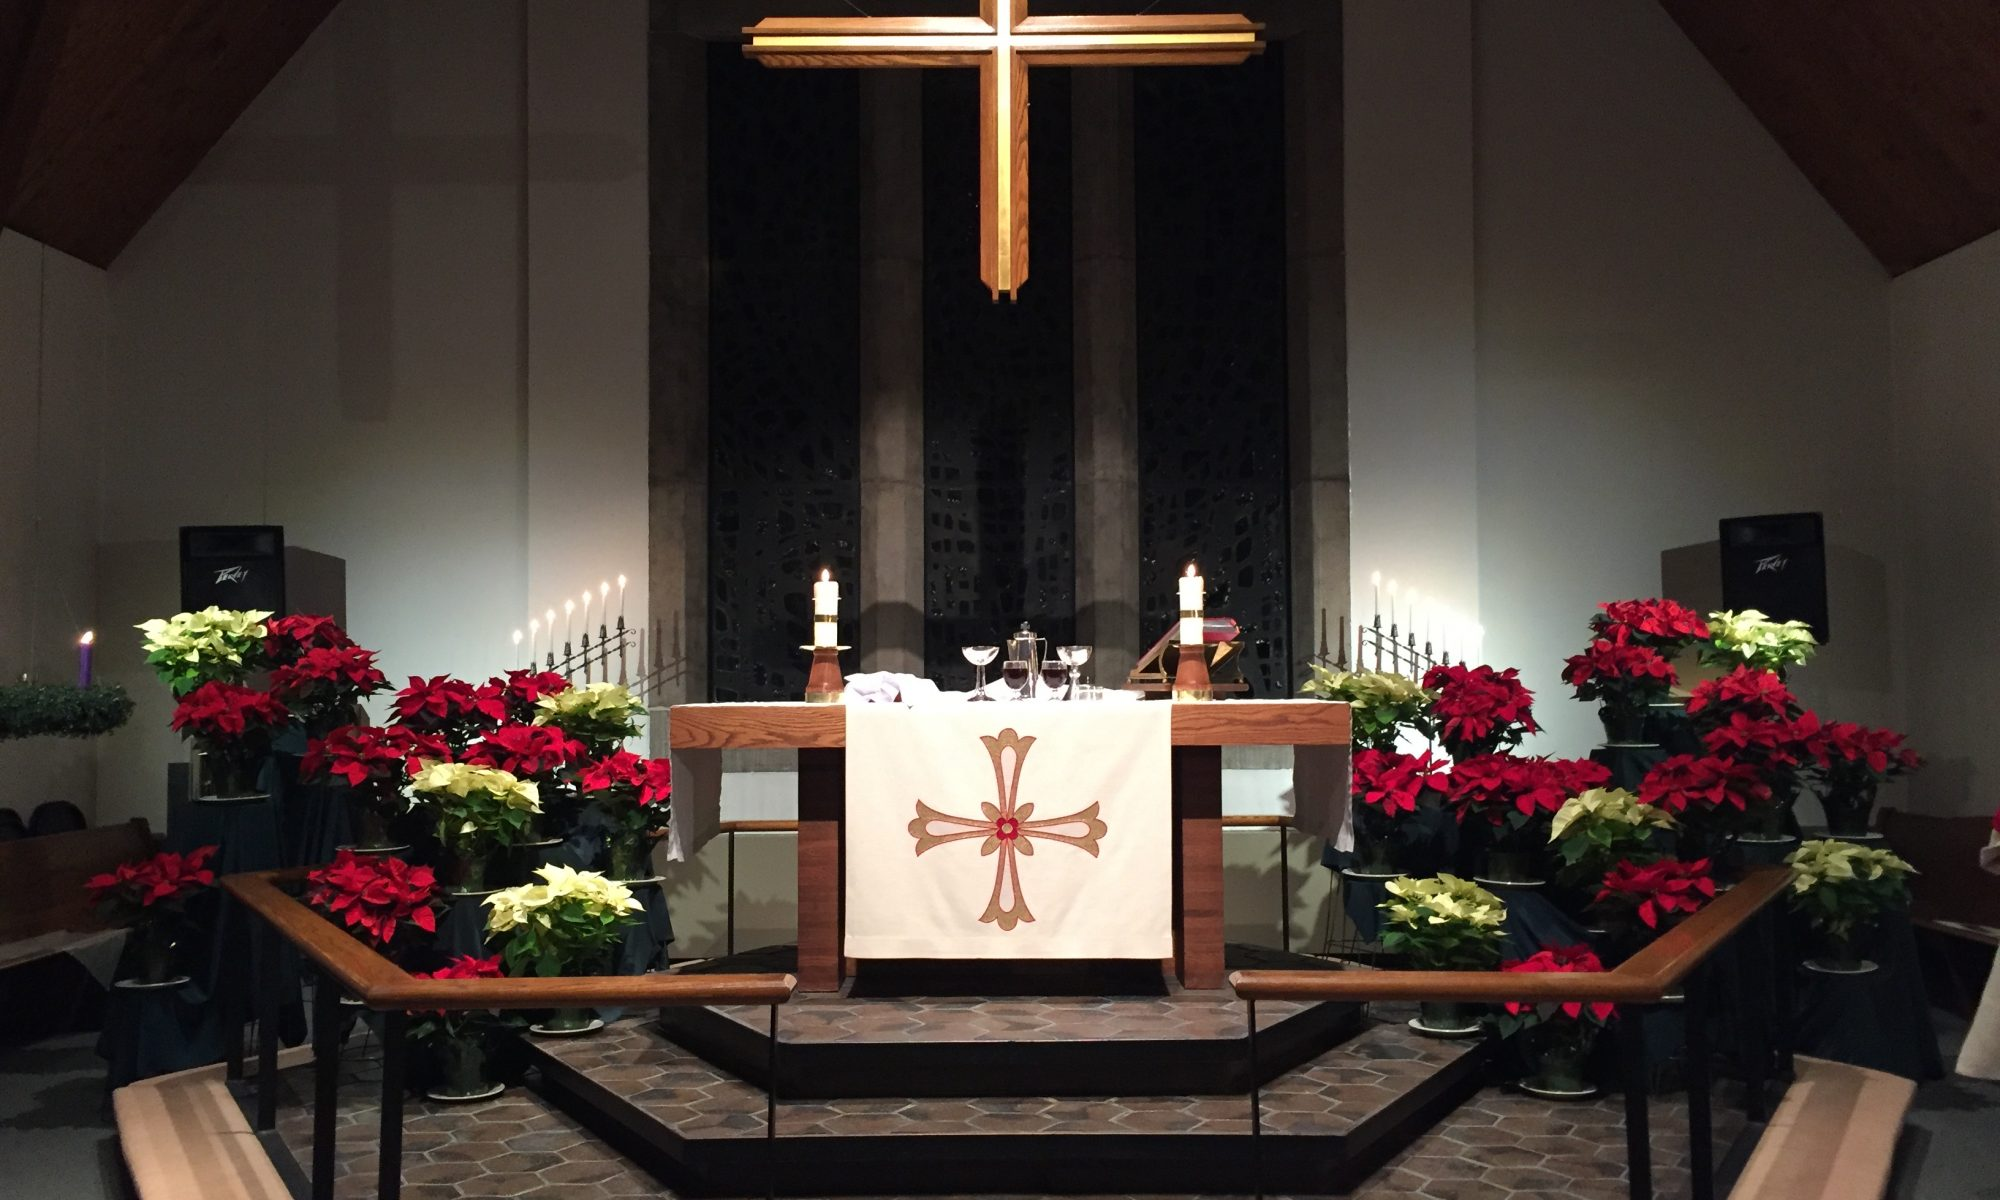 The altar with poinsettias